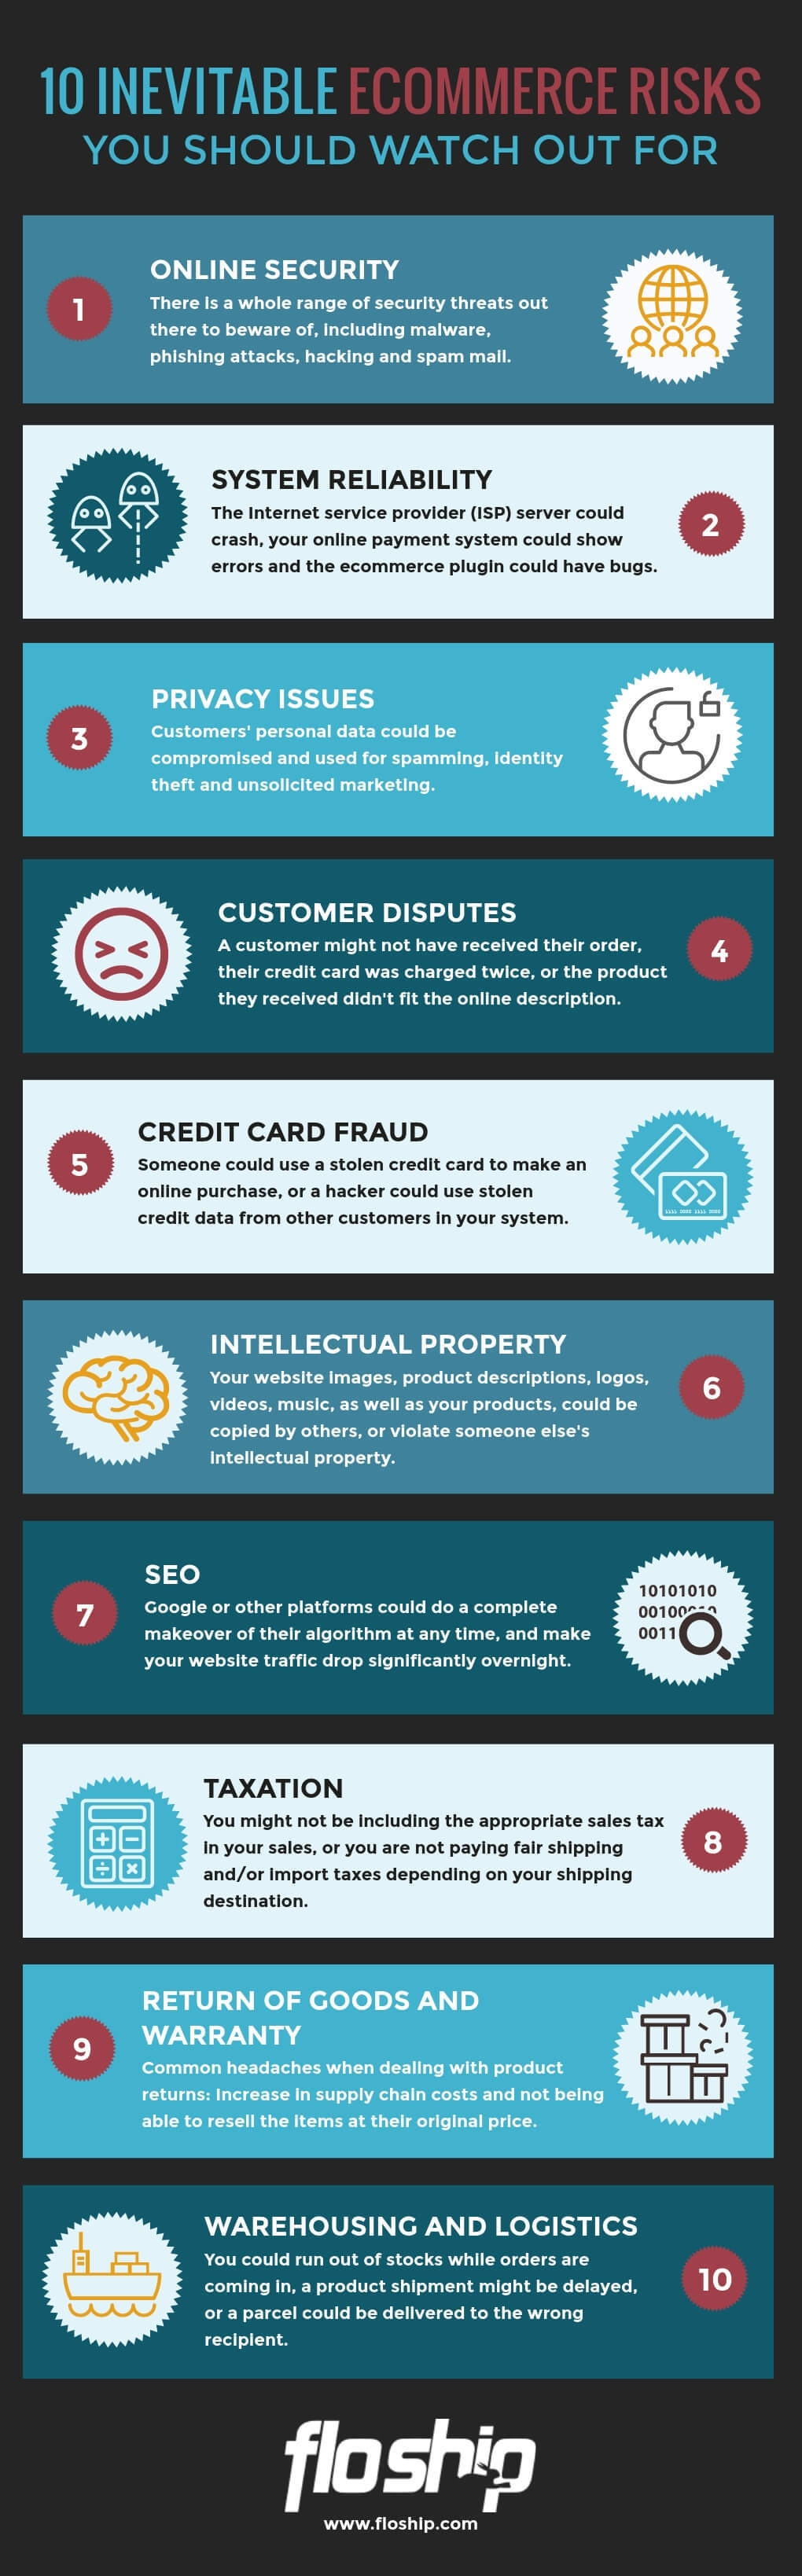 10 Inevitable Ecommerce Risks You Should Watch Out For [Infographic]